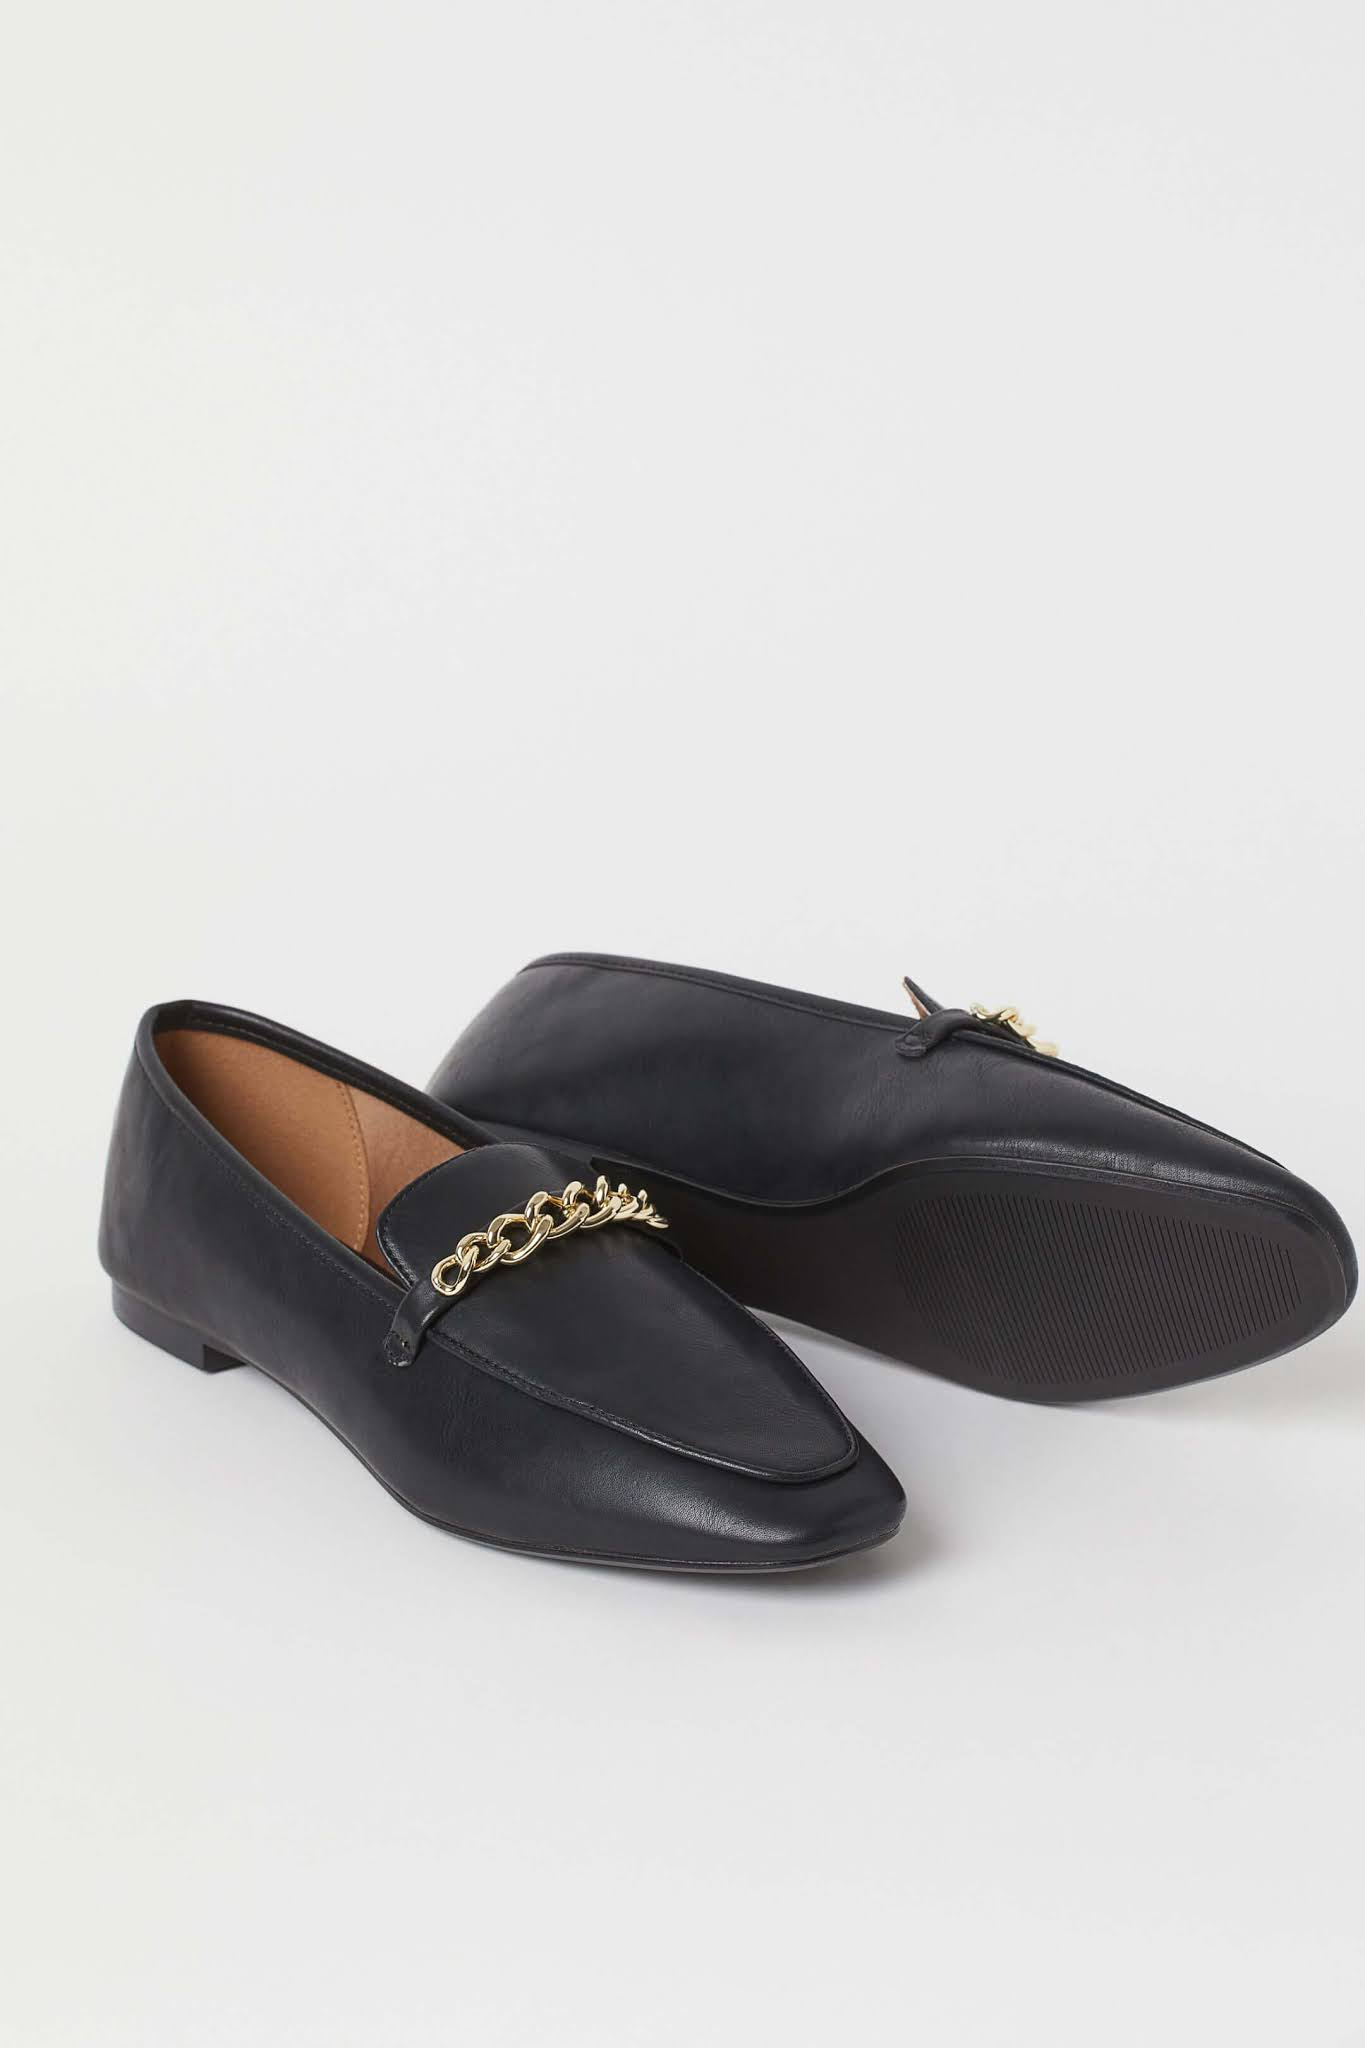 chain-detail loafers